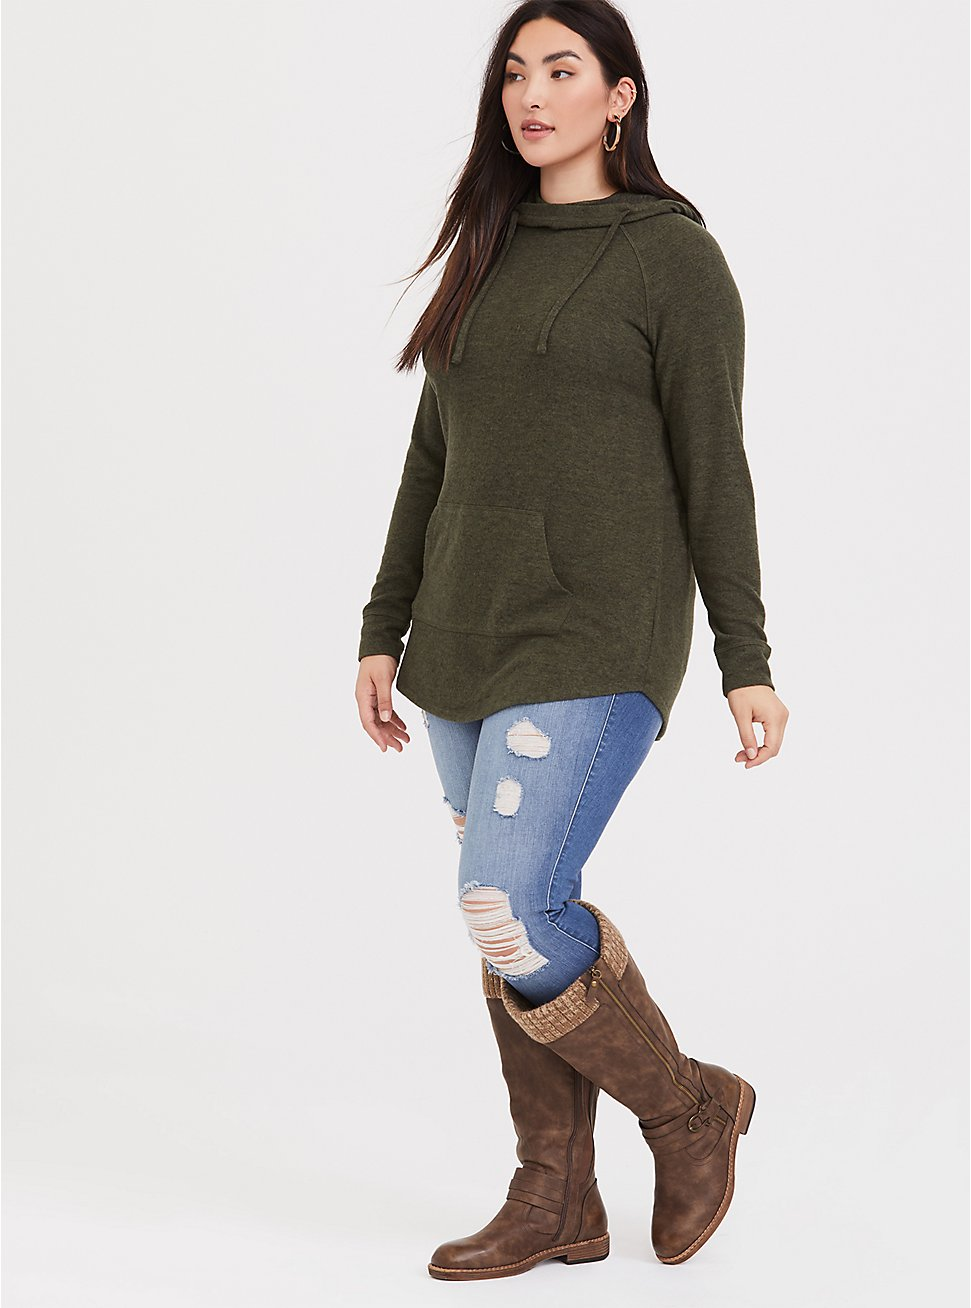 Super Soft Plush Olive Green Cowl Neck Tunic Hoodie, DEEP DEPTHS, hi-res